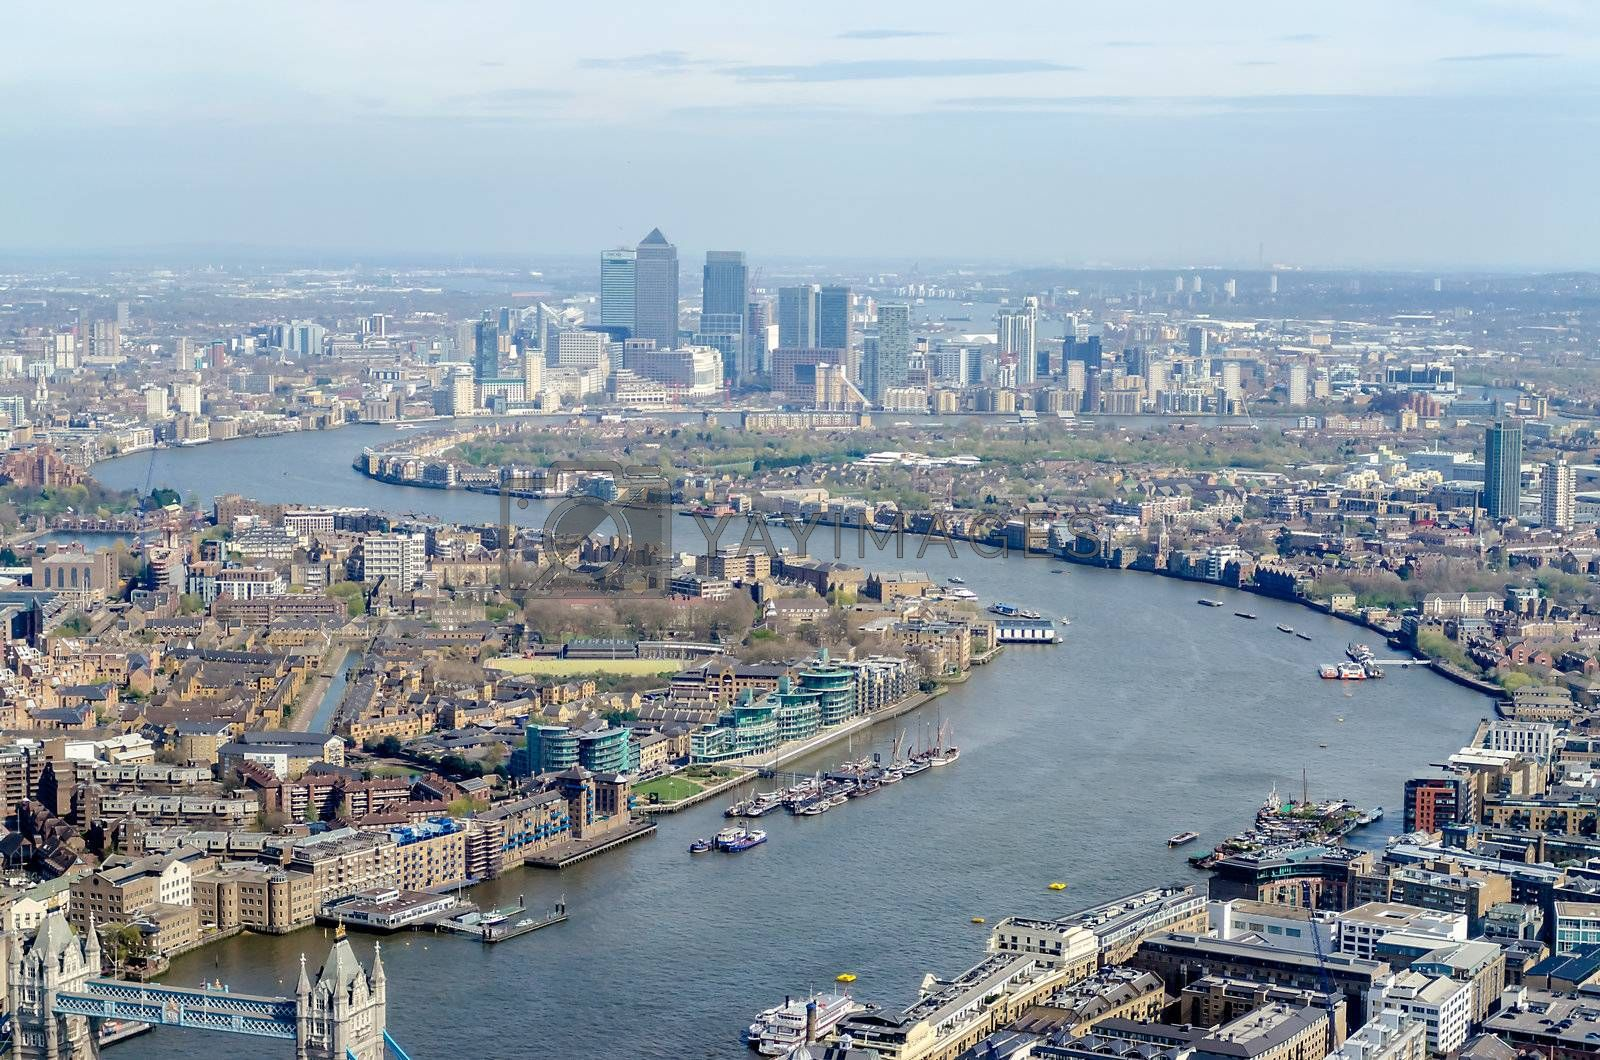 Panoramic View of London, over the river Thames towards Canary Wharf and Eastern London